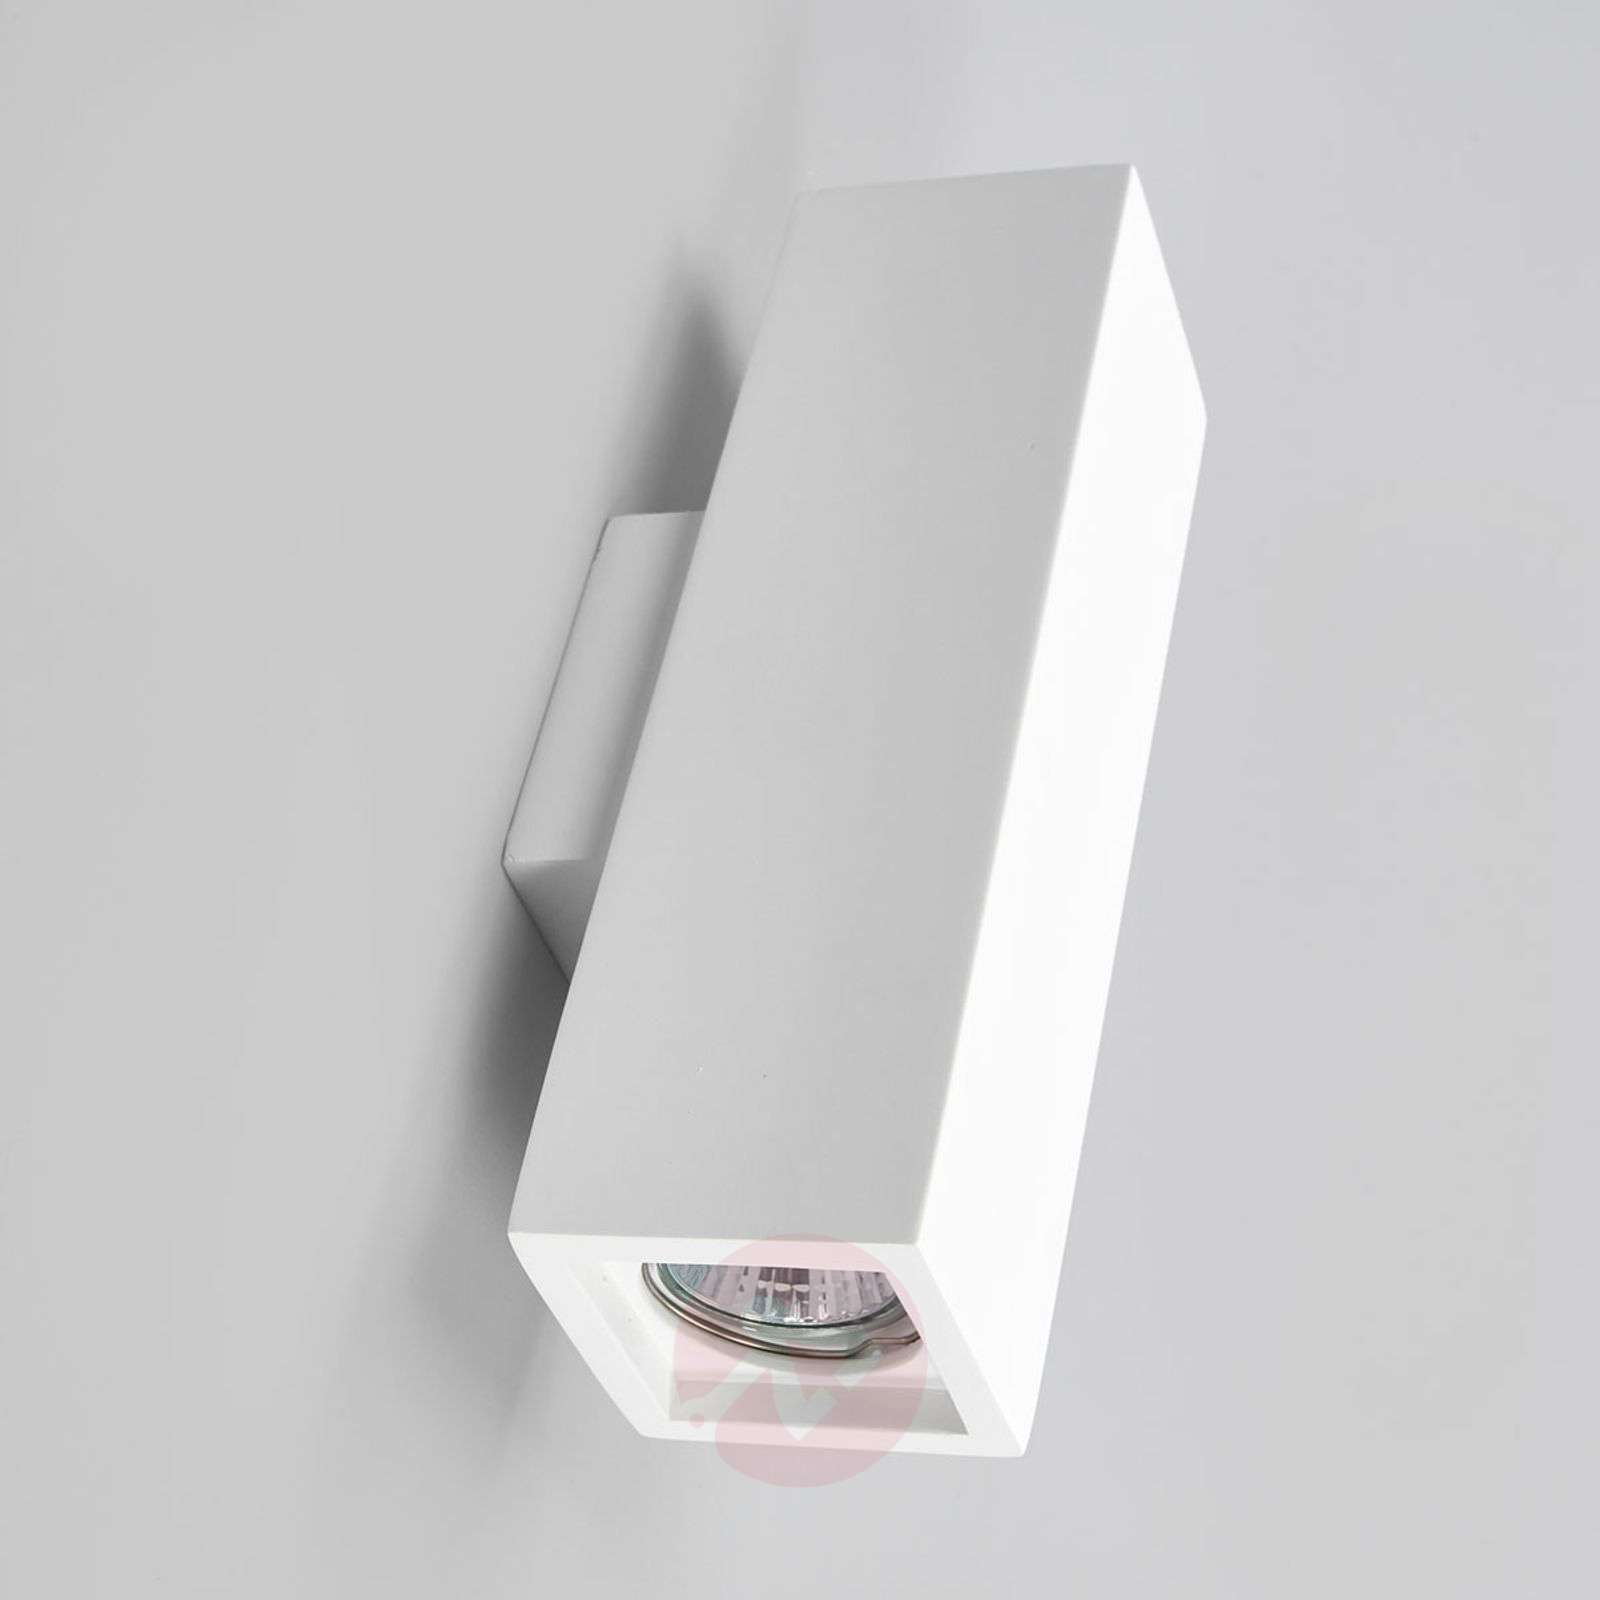 Norwin 2-bulb rectangular plaster wall light-9613040-02